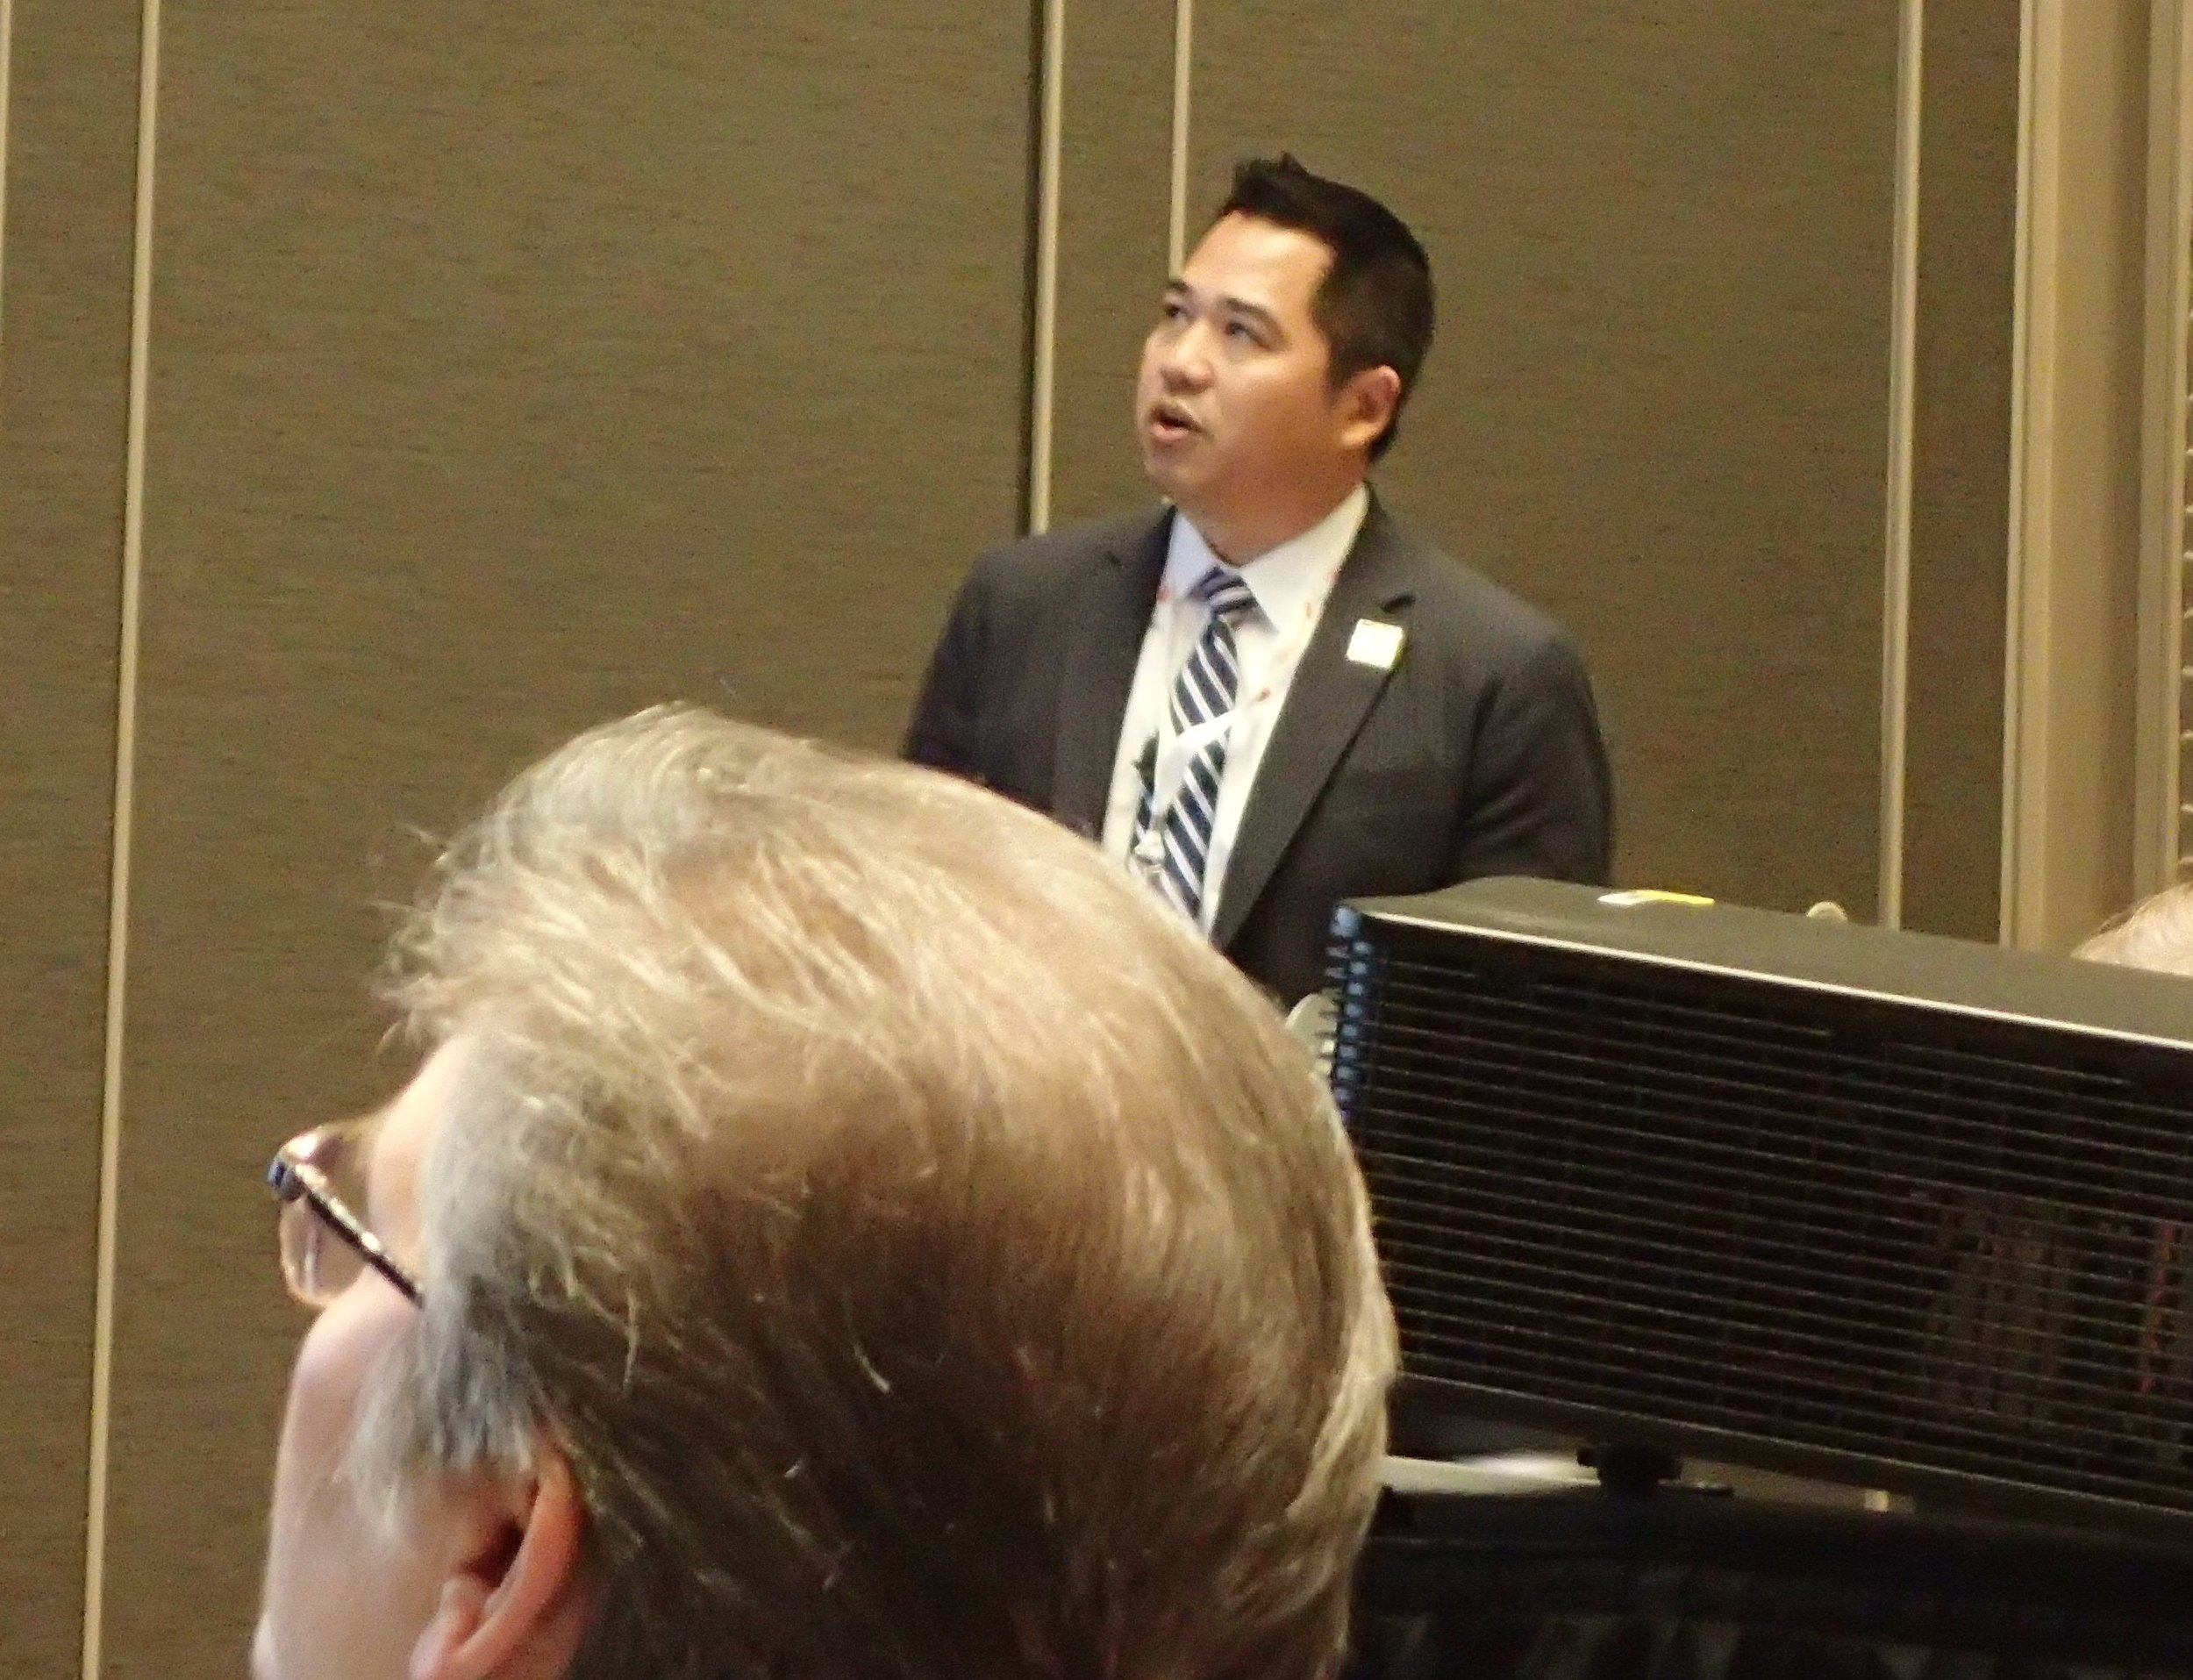 Robert Lam speaks on Second Victim Syndrome at AAEM Scientific Assembly 2018.